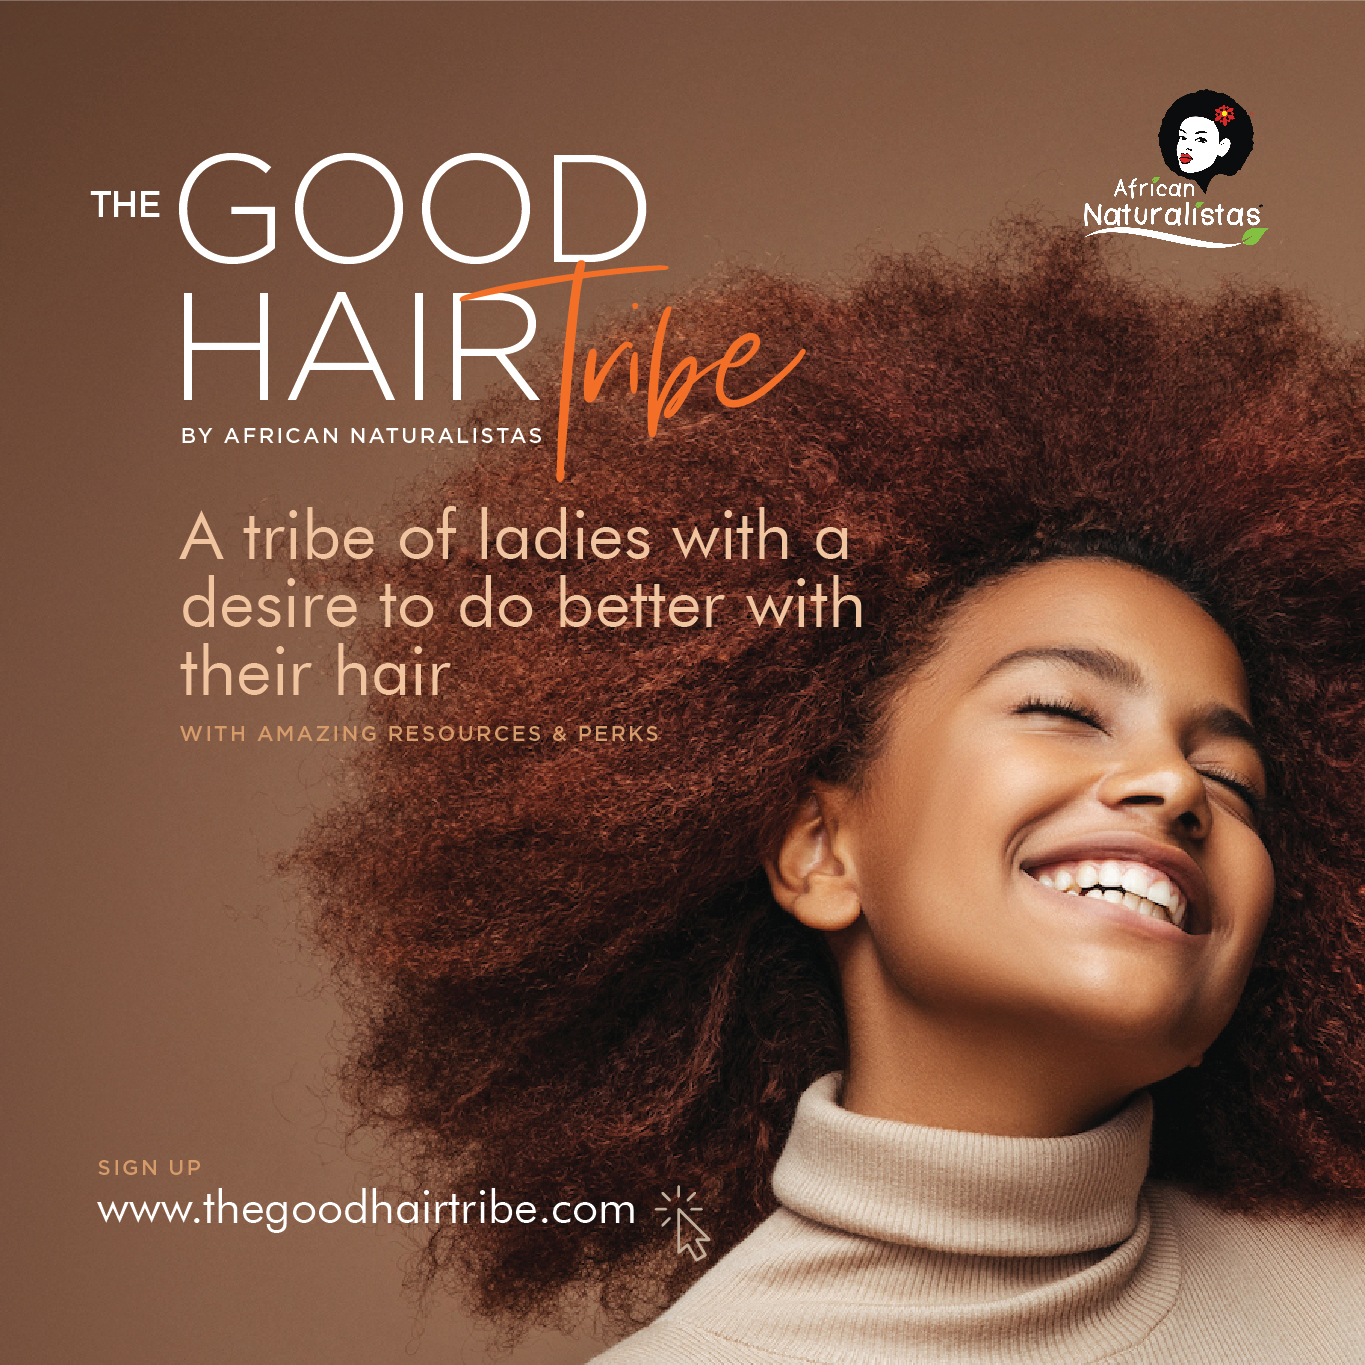 Join The Good Hair Tribe